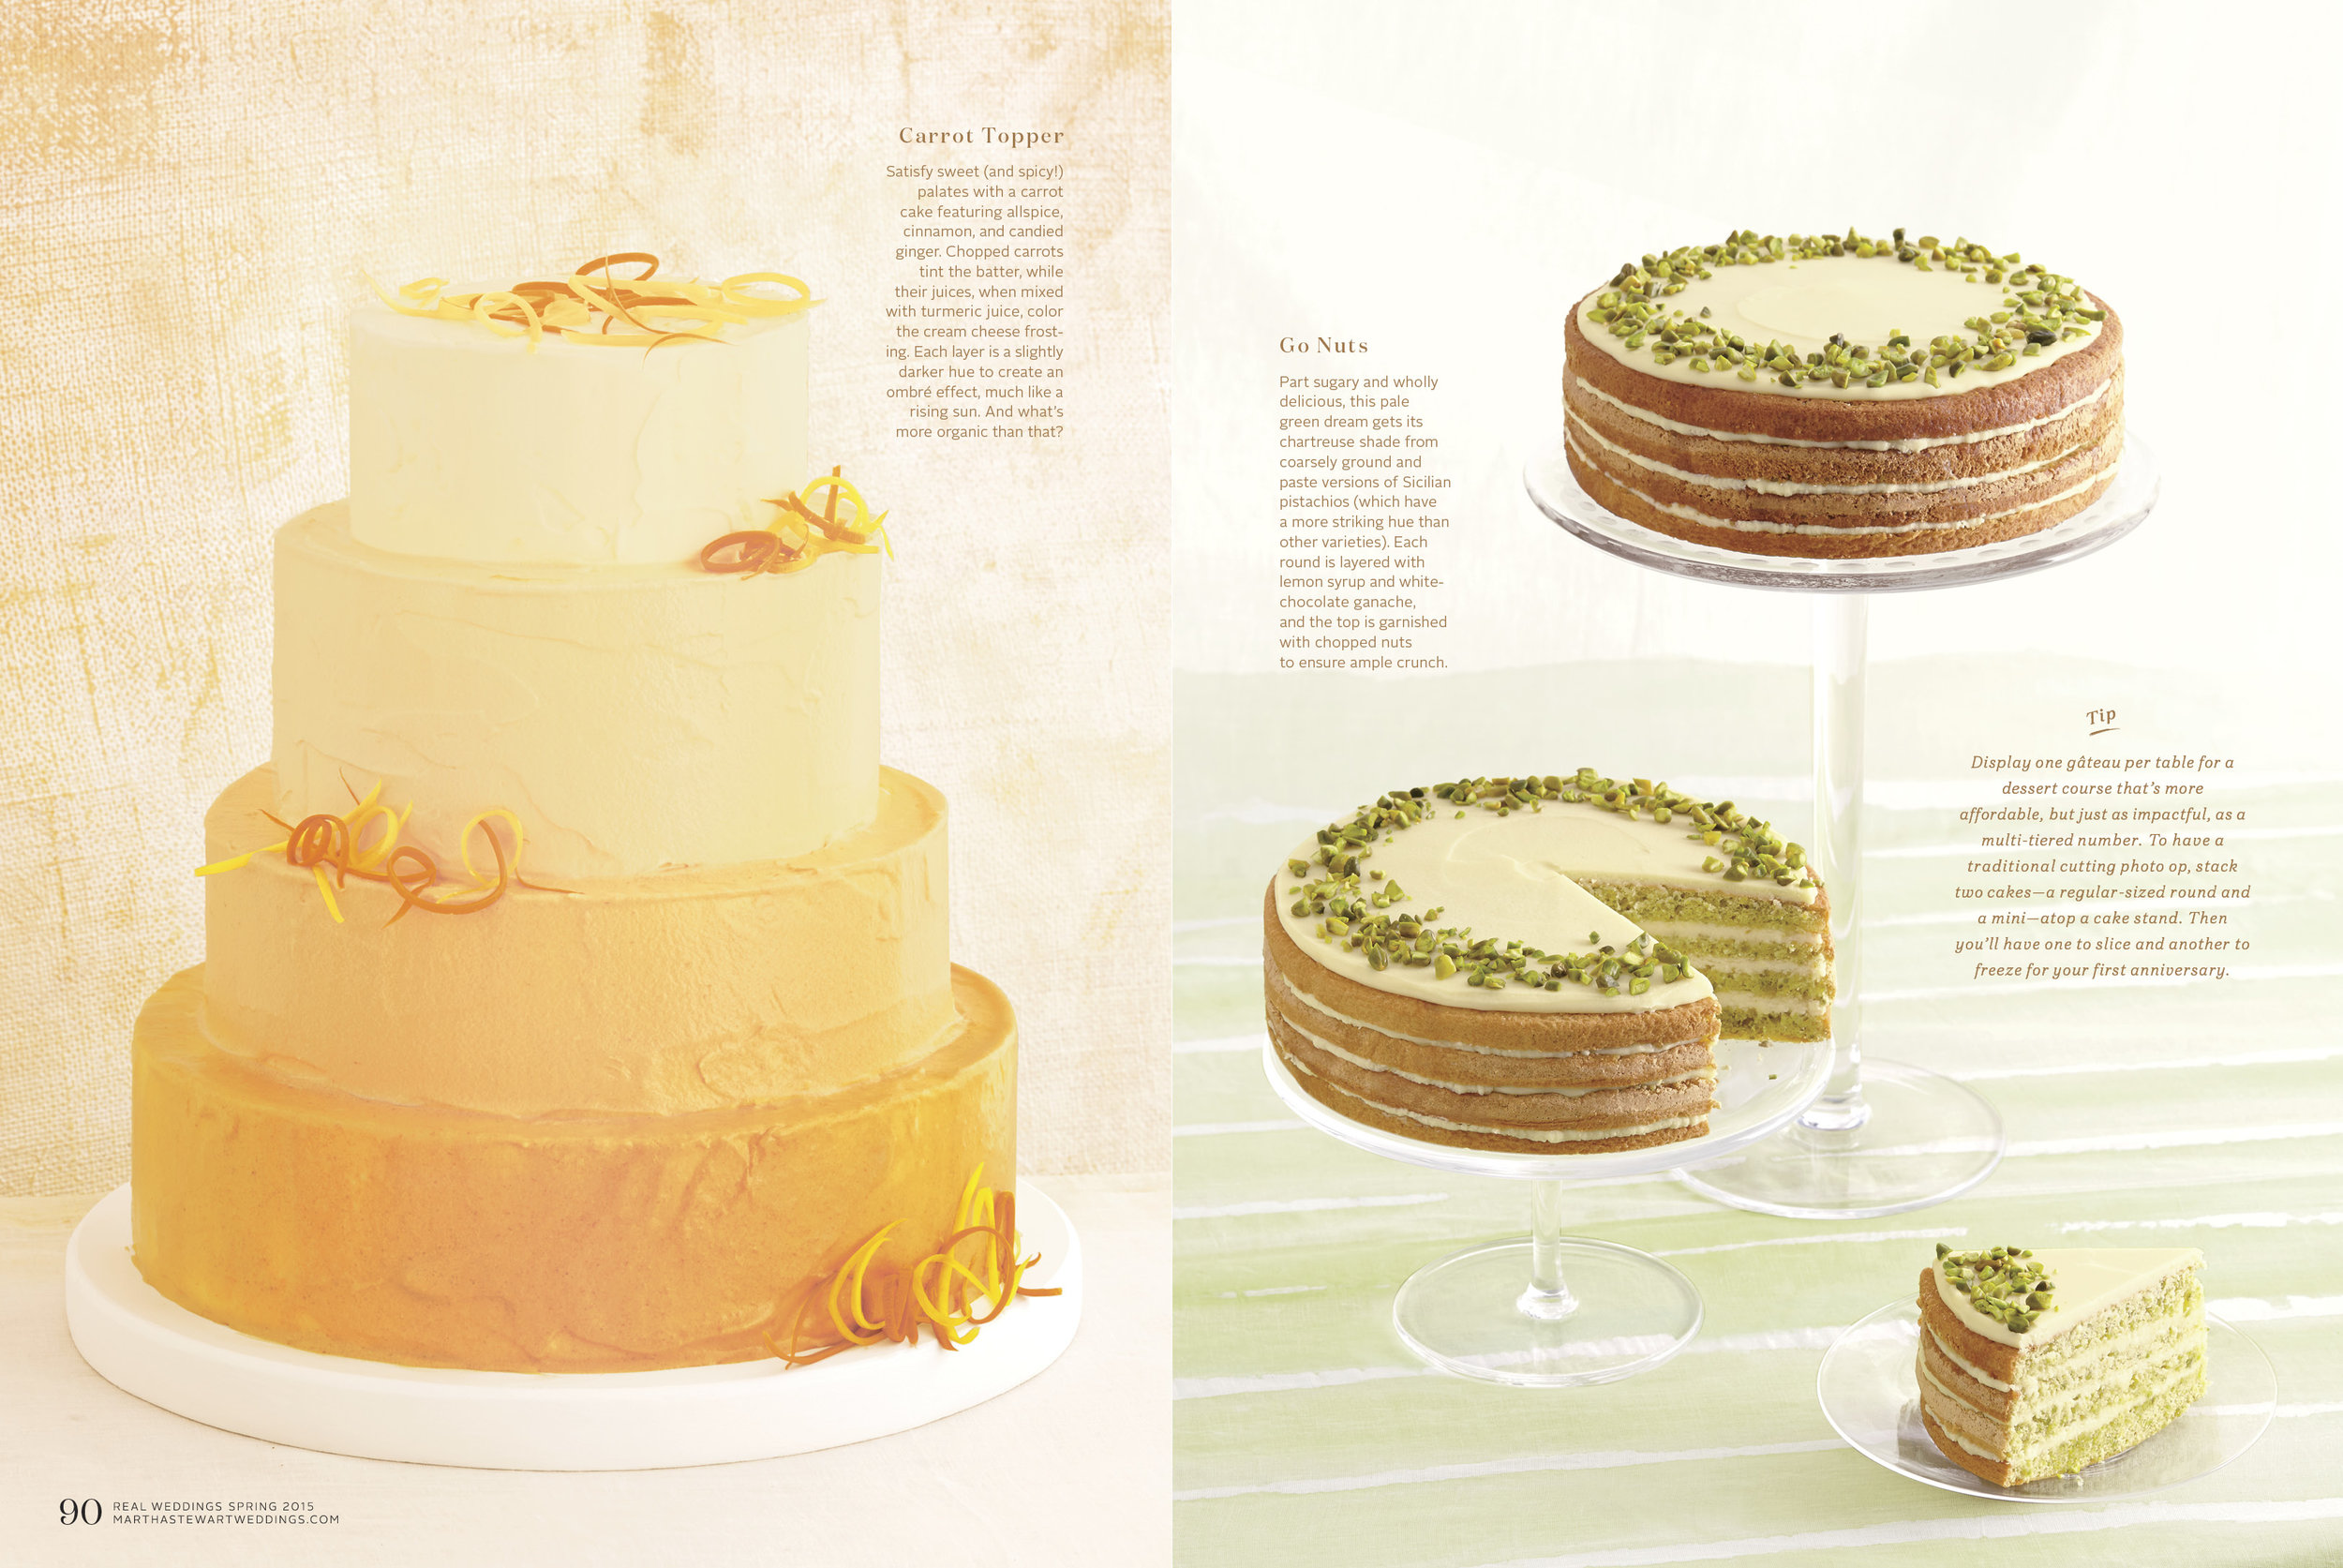 Carrot Cake And Pistachio Cakes Photo By Linda Pugliese For Martha Stewart Weddings